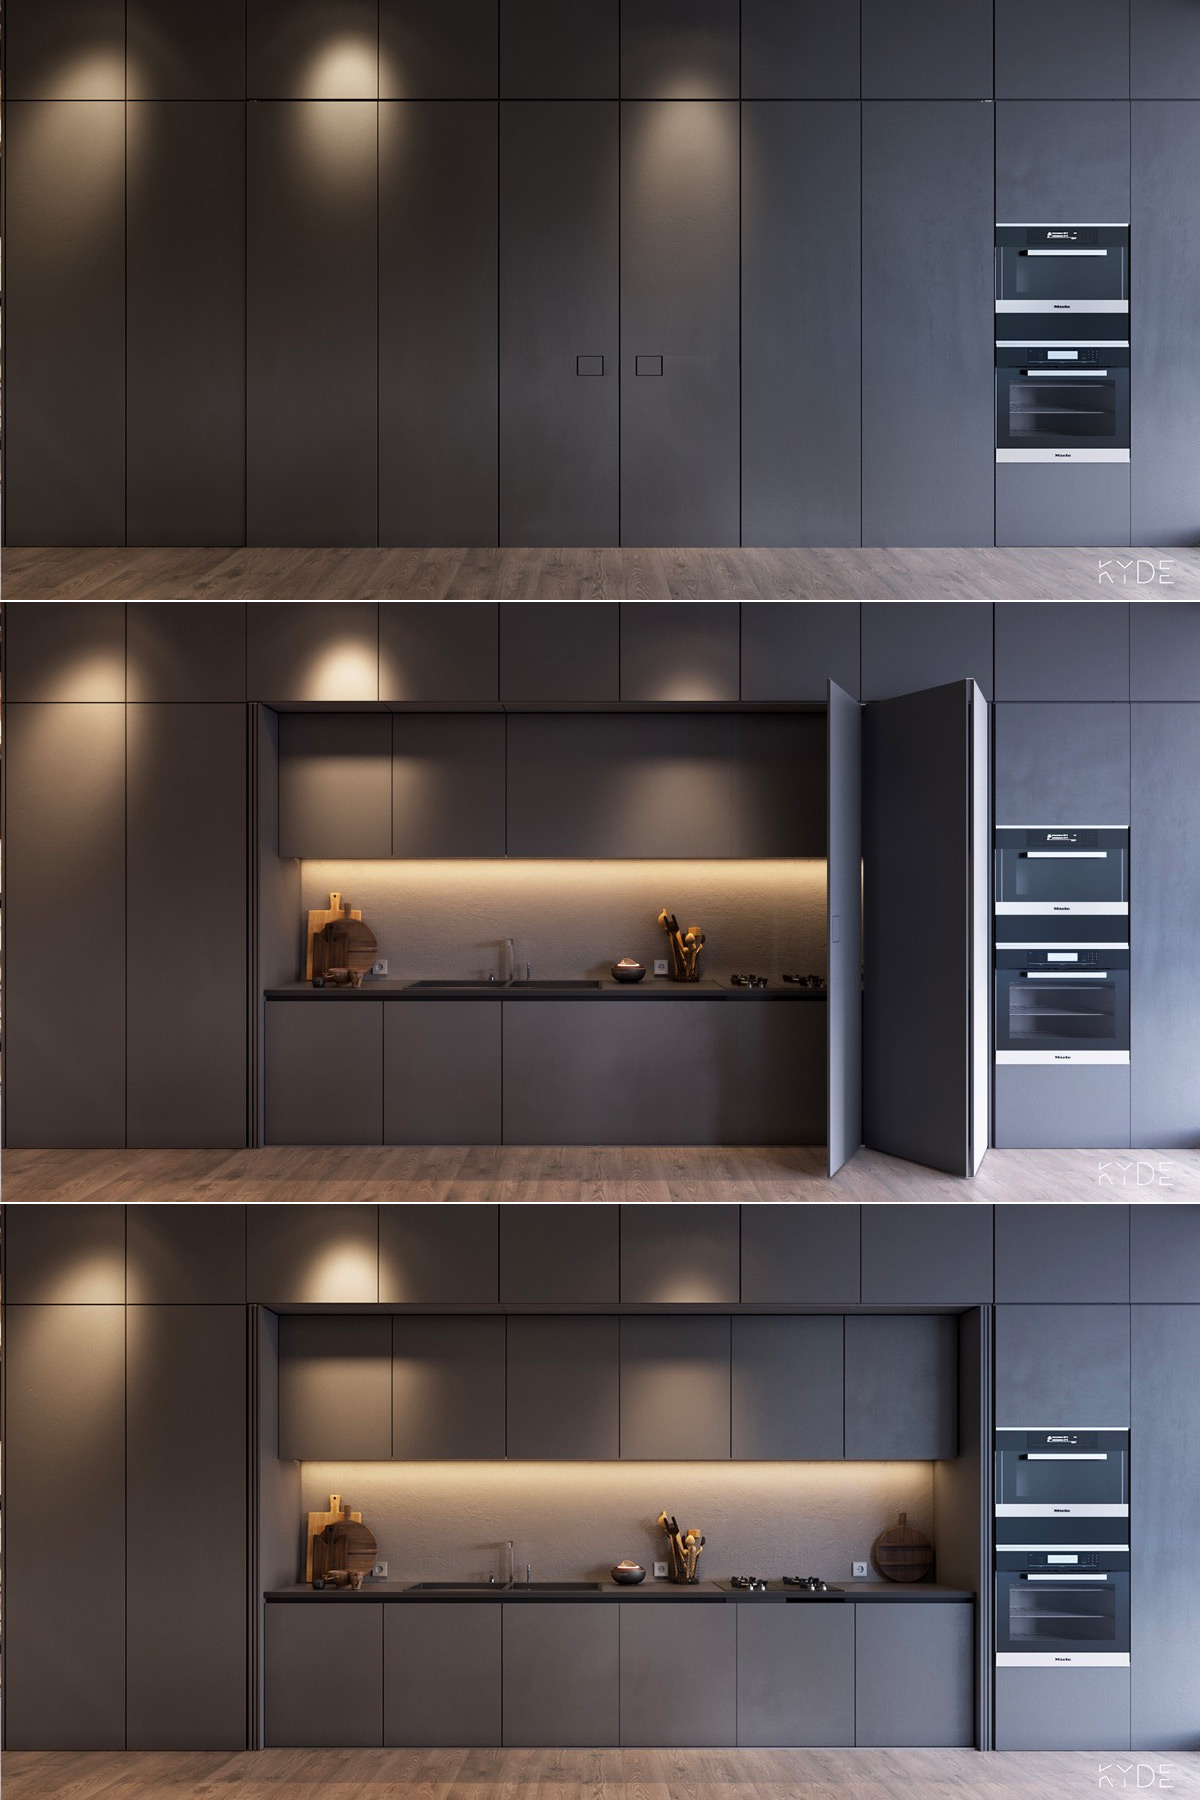 50 Wonderful One Wall Kitchens And Tips You Can Use From Them images 22